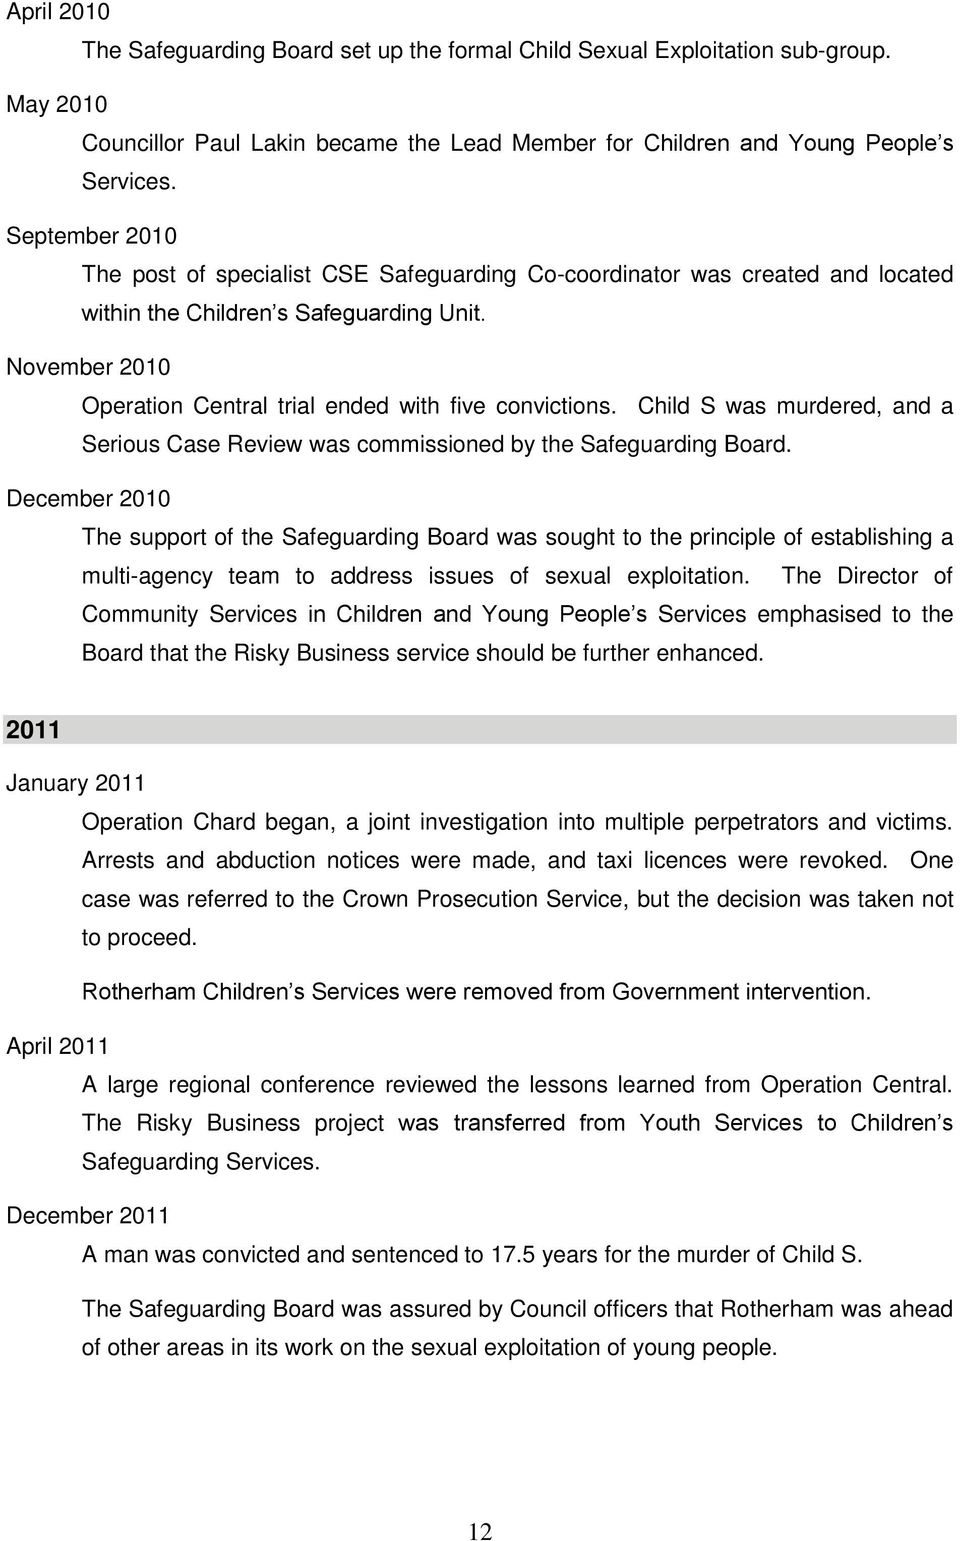 November 2010 Operation Central trial ended with five convictions. Child S was murdered, and a Serious Case Review was commissioned by the Safeguarding Board.